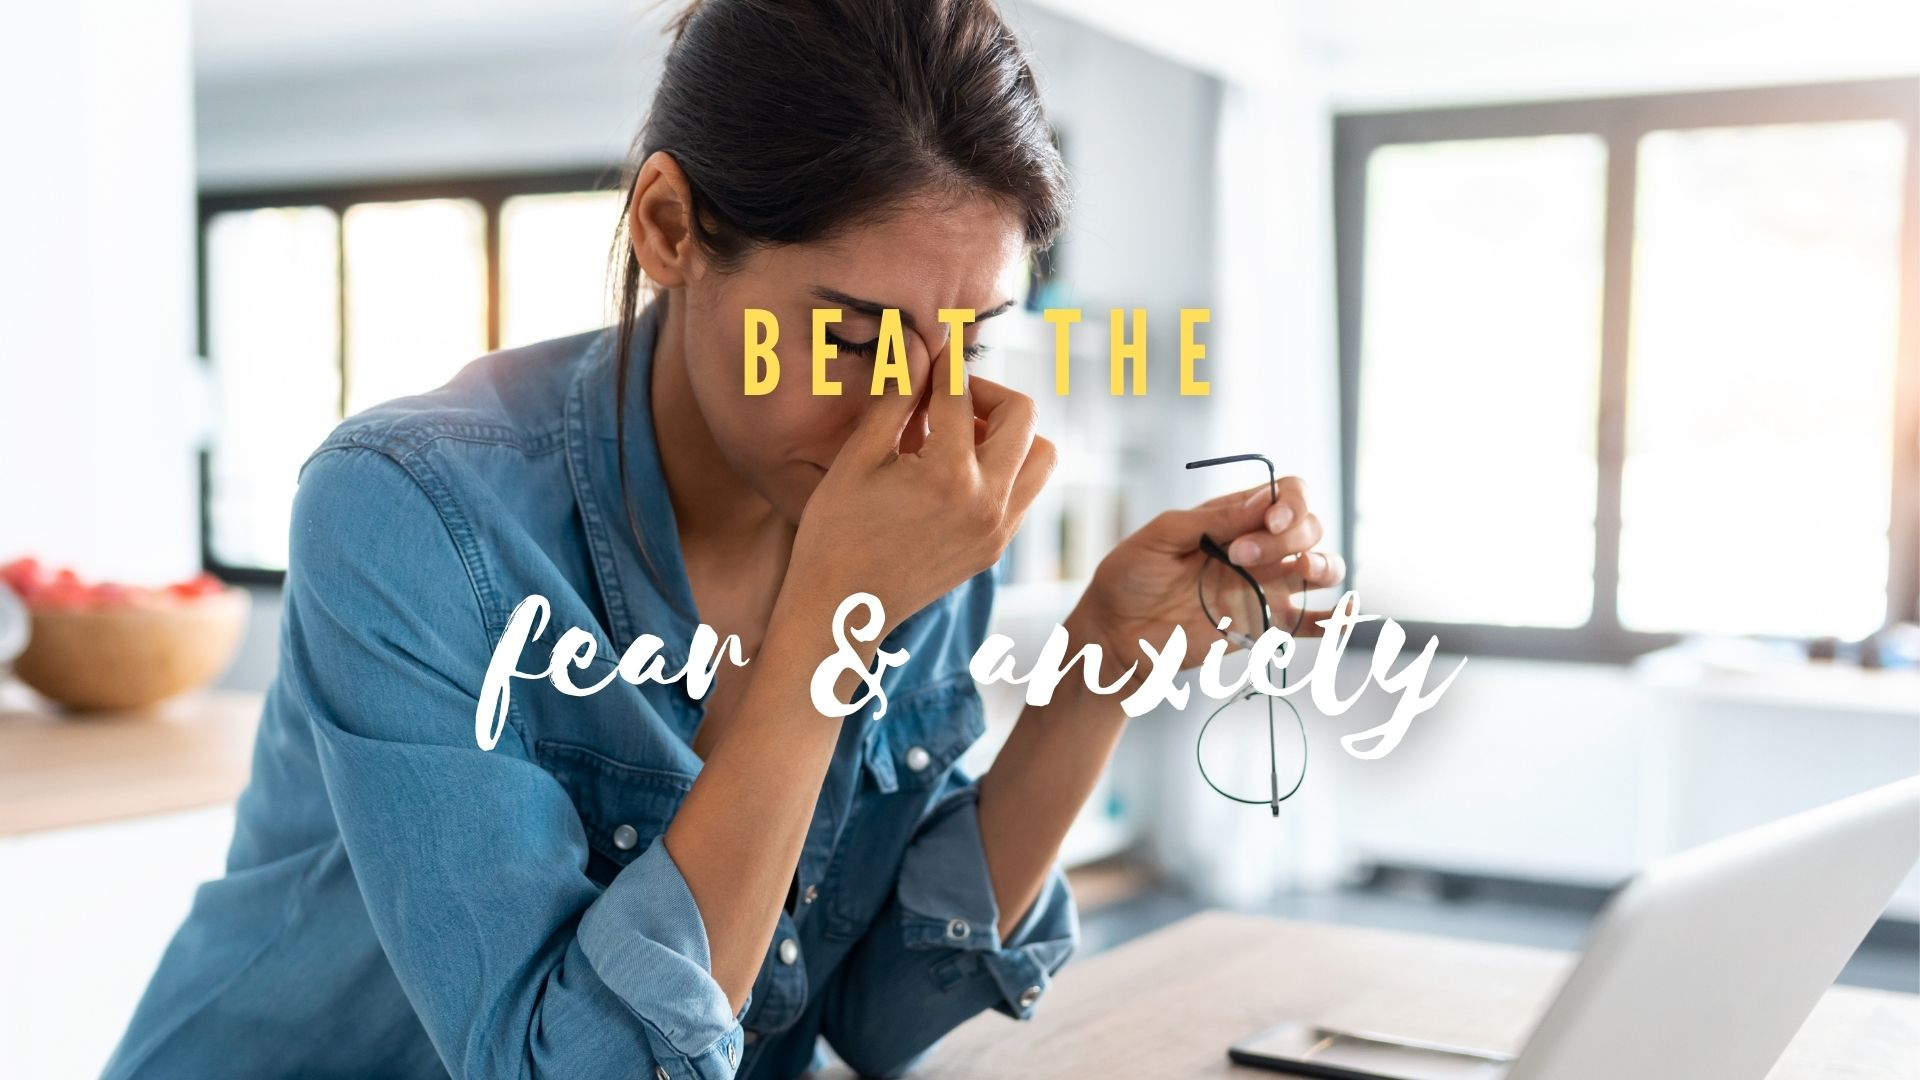 Beat the fear and anxiety